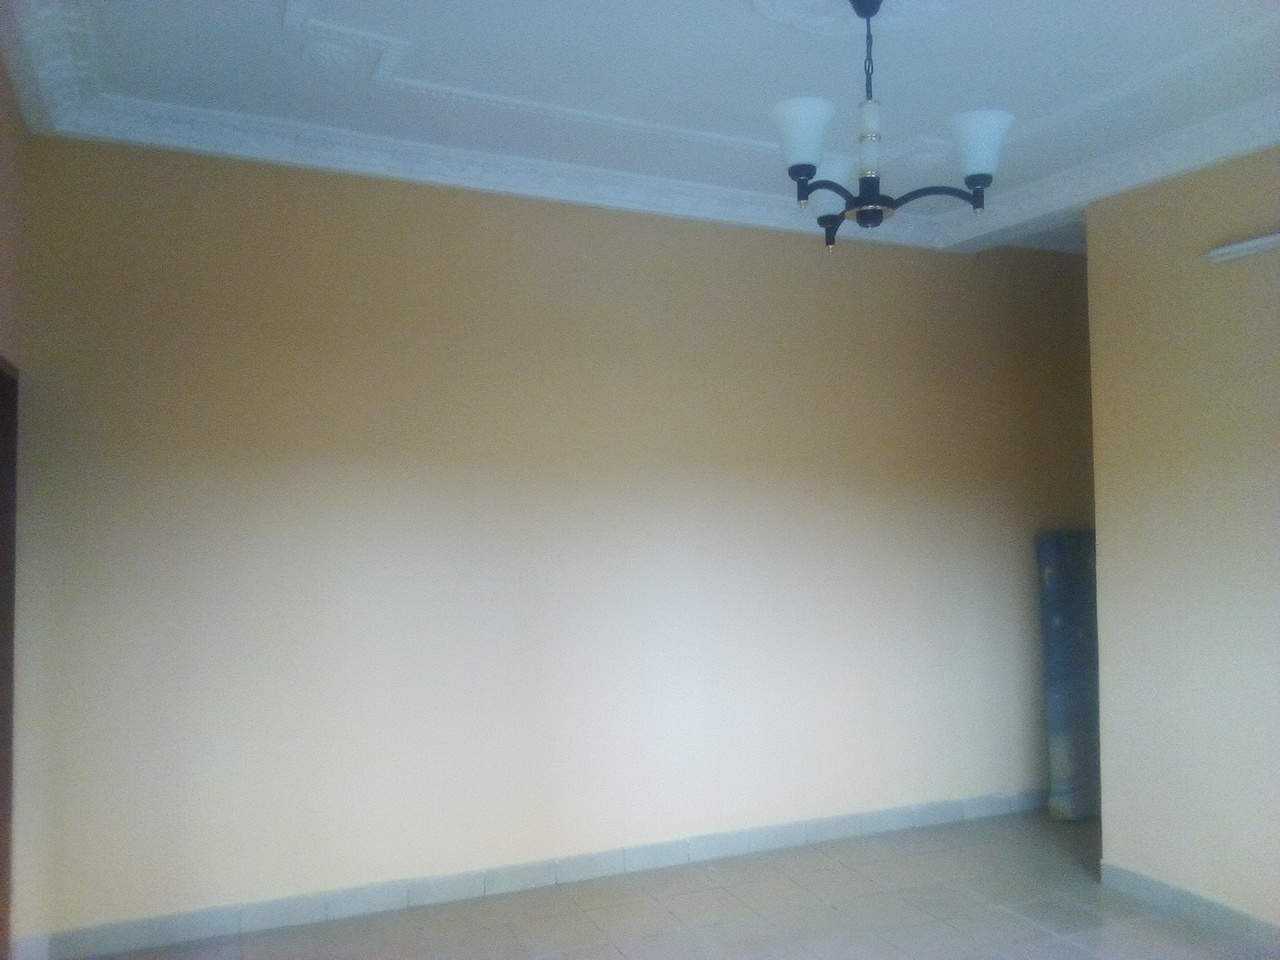 Apartment to rent - Yaoundé, Emana, pas loin du pont - 1 living room(s), 1 bedroom(s), 1 bathroom(s) - 100 000 FCFA / month